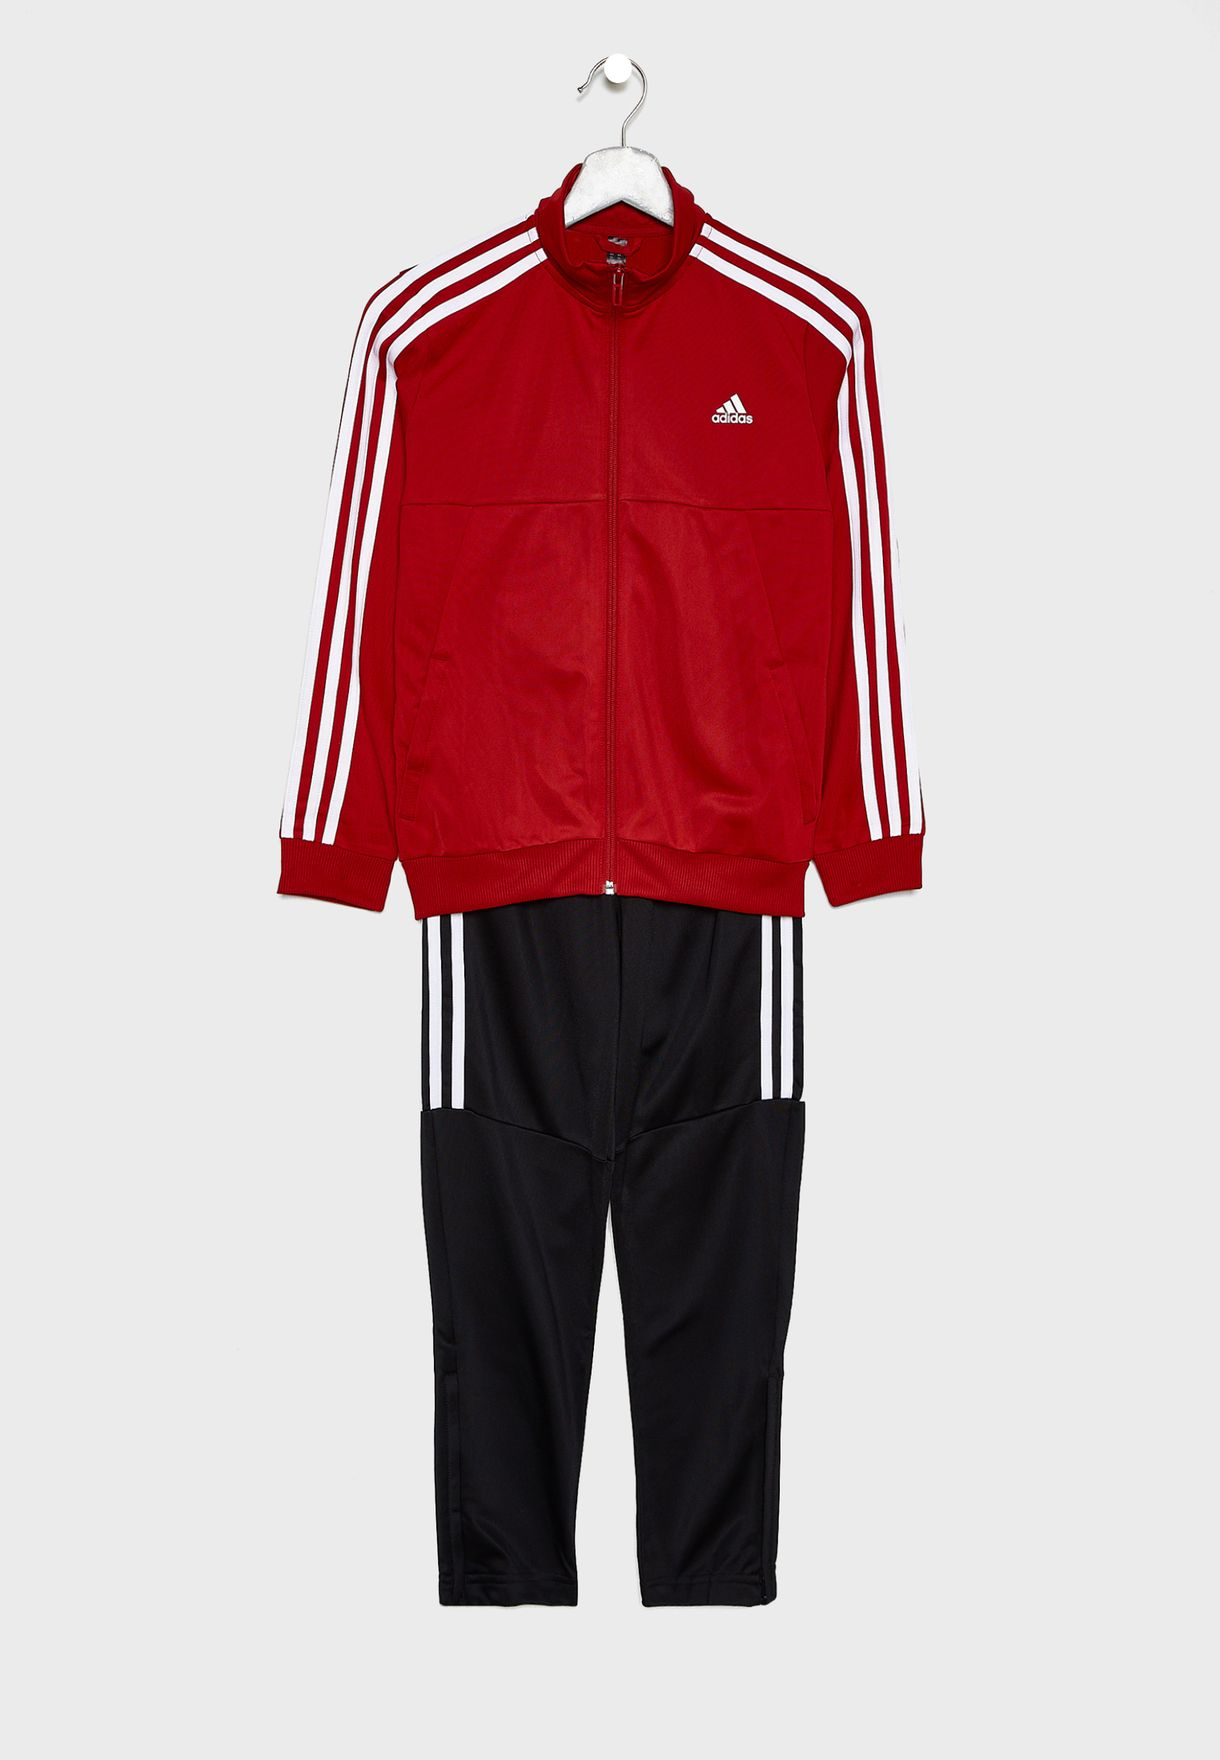 Canoa Reino Red de comunicacion  Buy adidas multicolor Youth Tiro Tracksuit for Kids in MENA, Worldwide |  ED6211